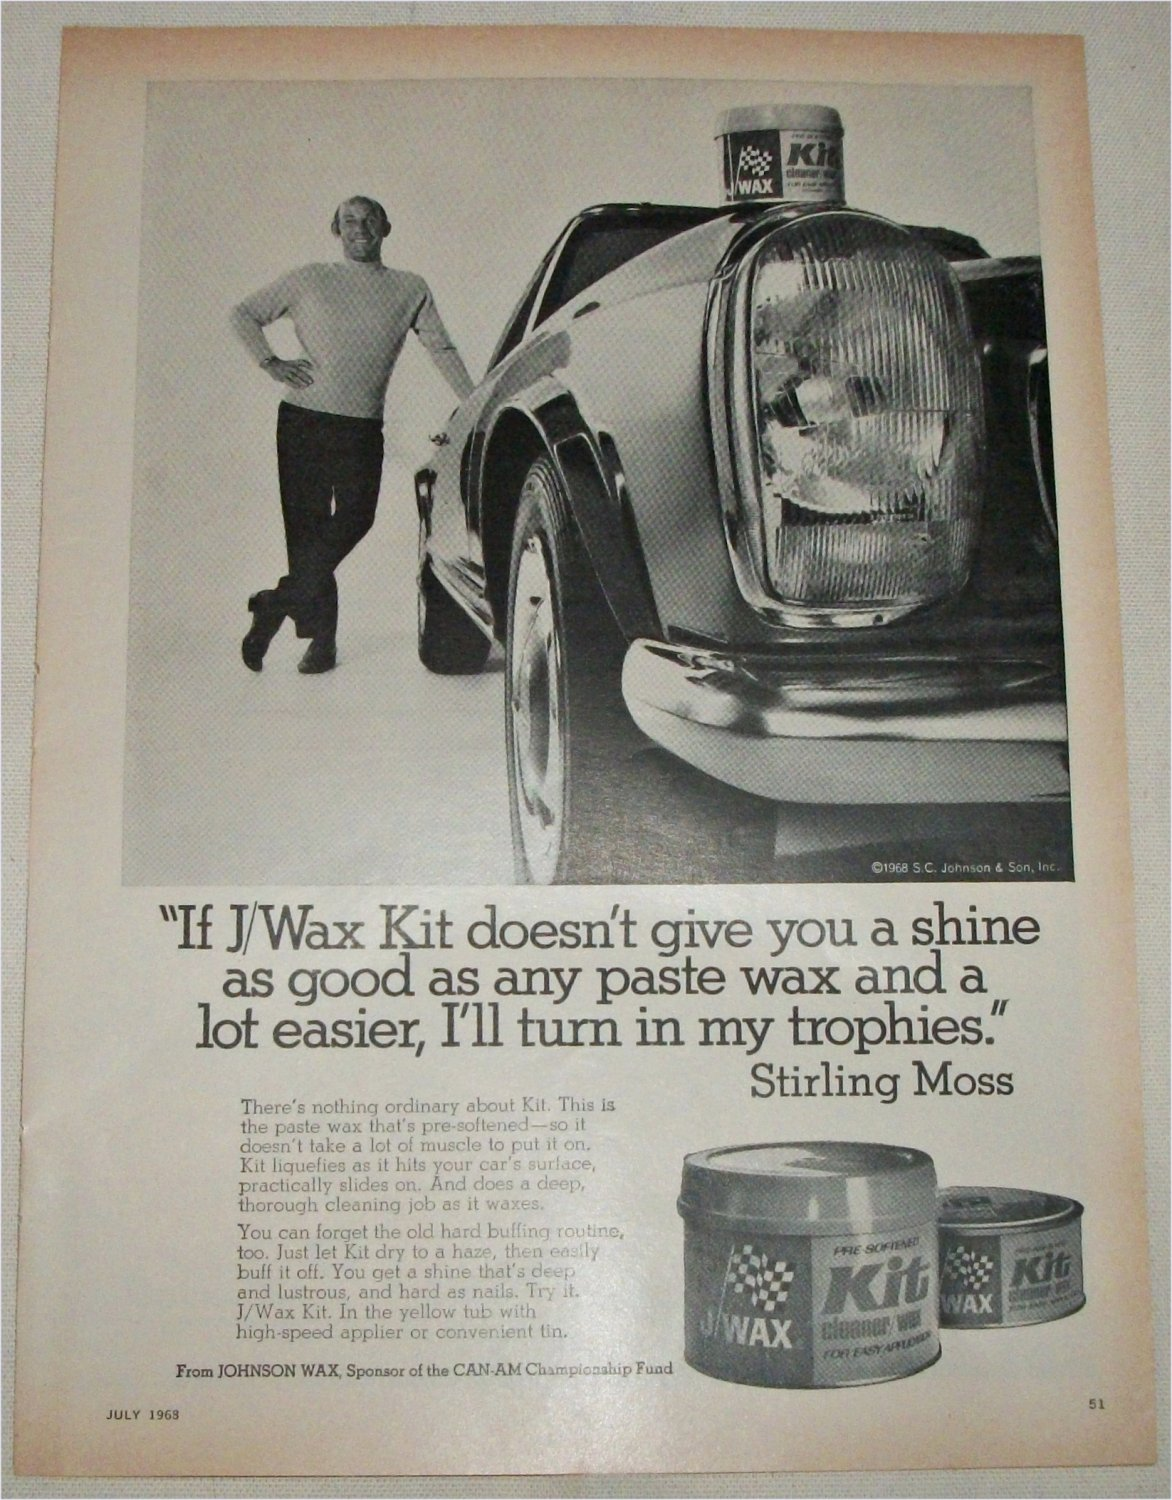 1968 J Wax ad featuring Stirling Moss